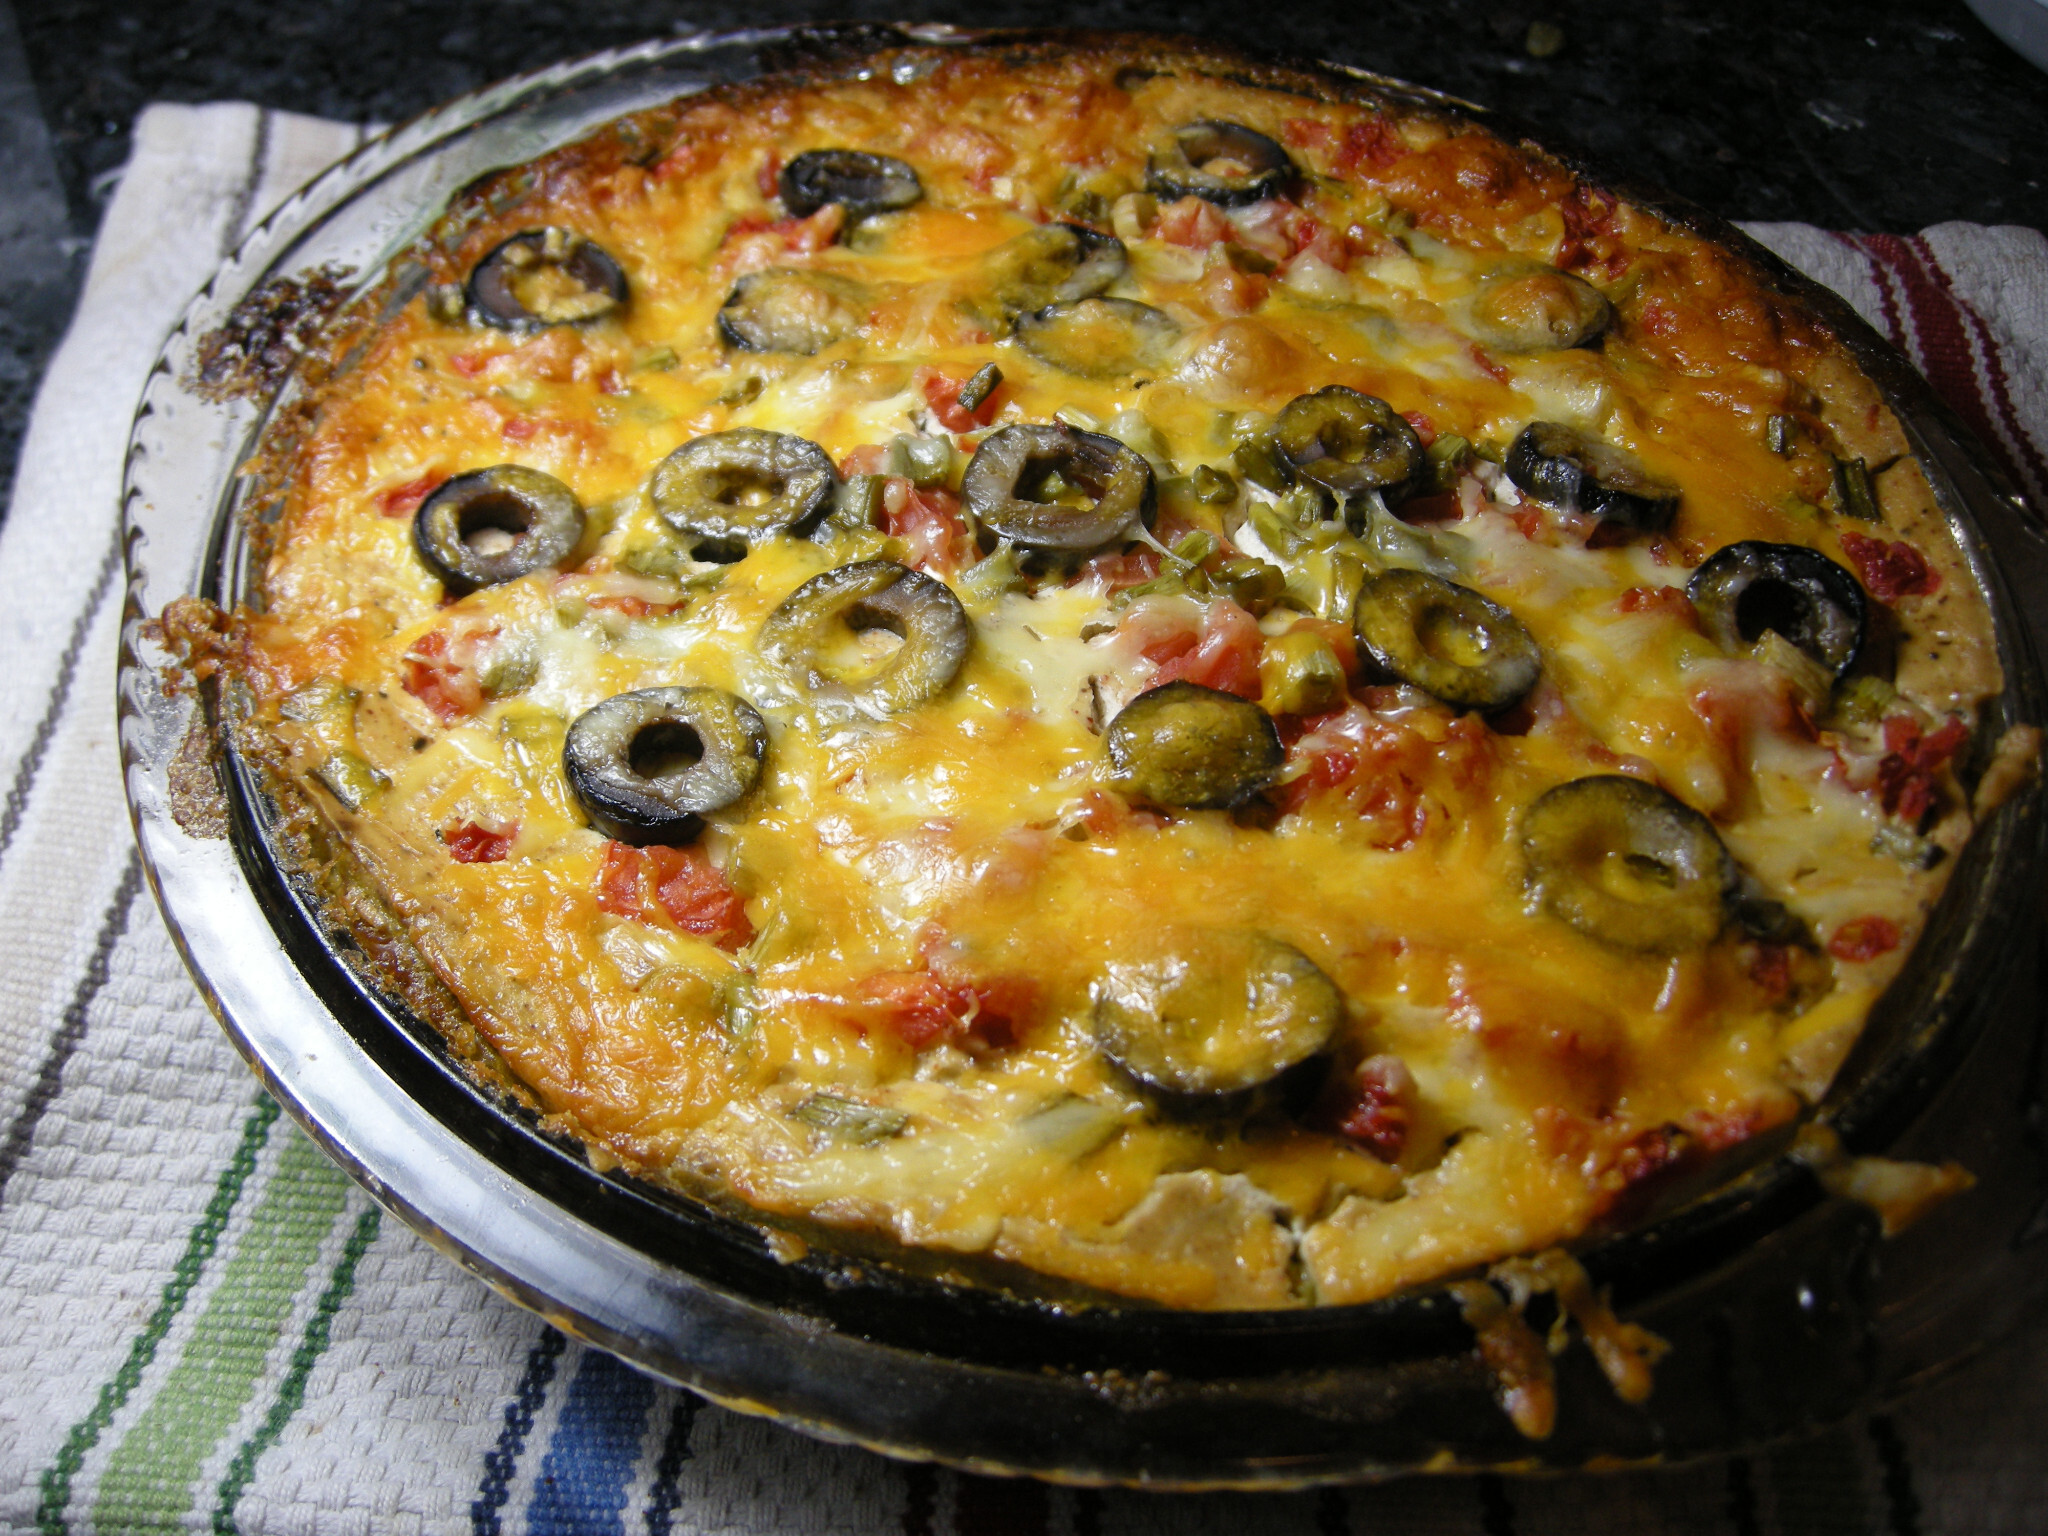 Rosie Makes A Layered Mexican Casserole Dip For Her Partay.